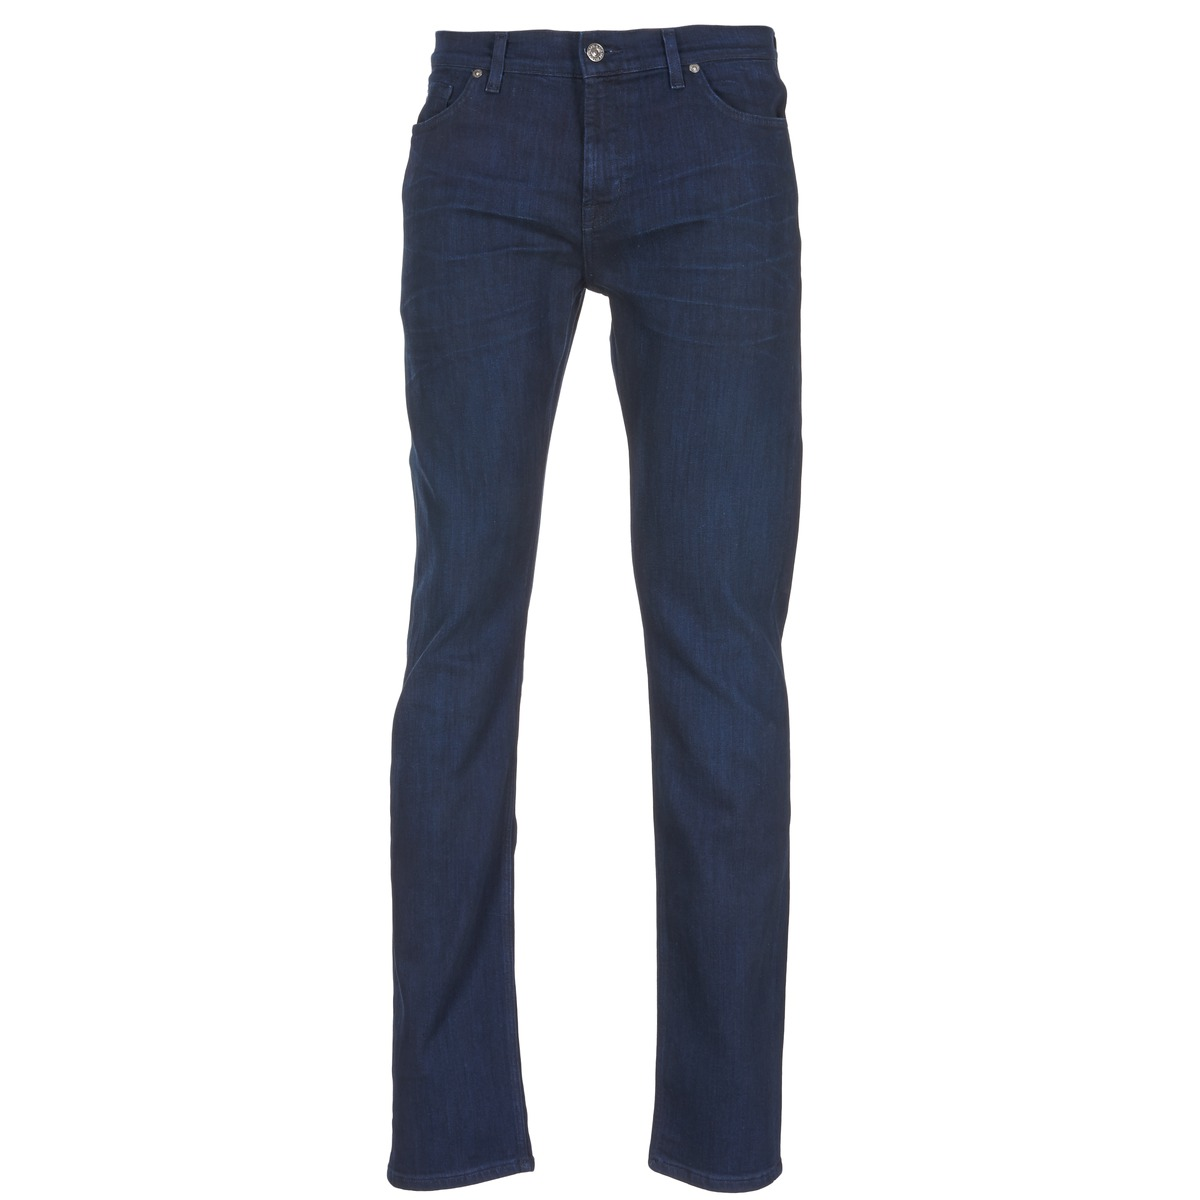 7 for all Mankind RONNIE WINTER INTENSE Blue / Fonce